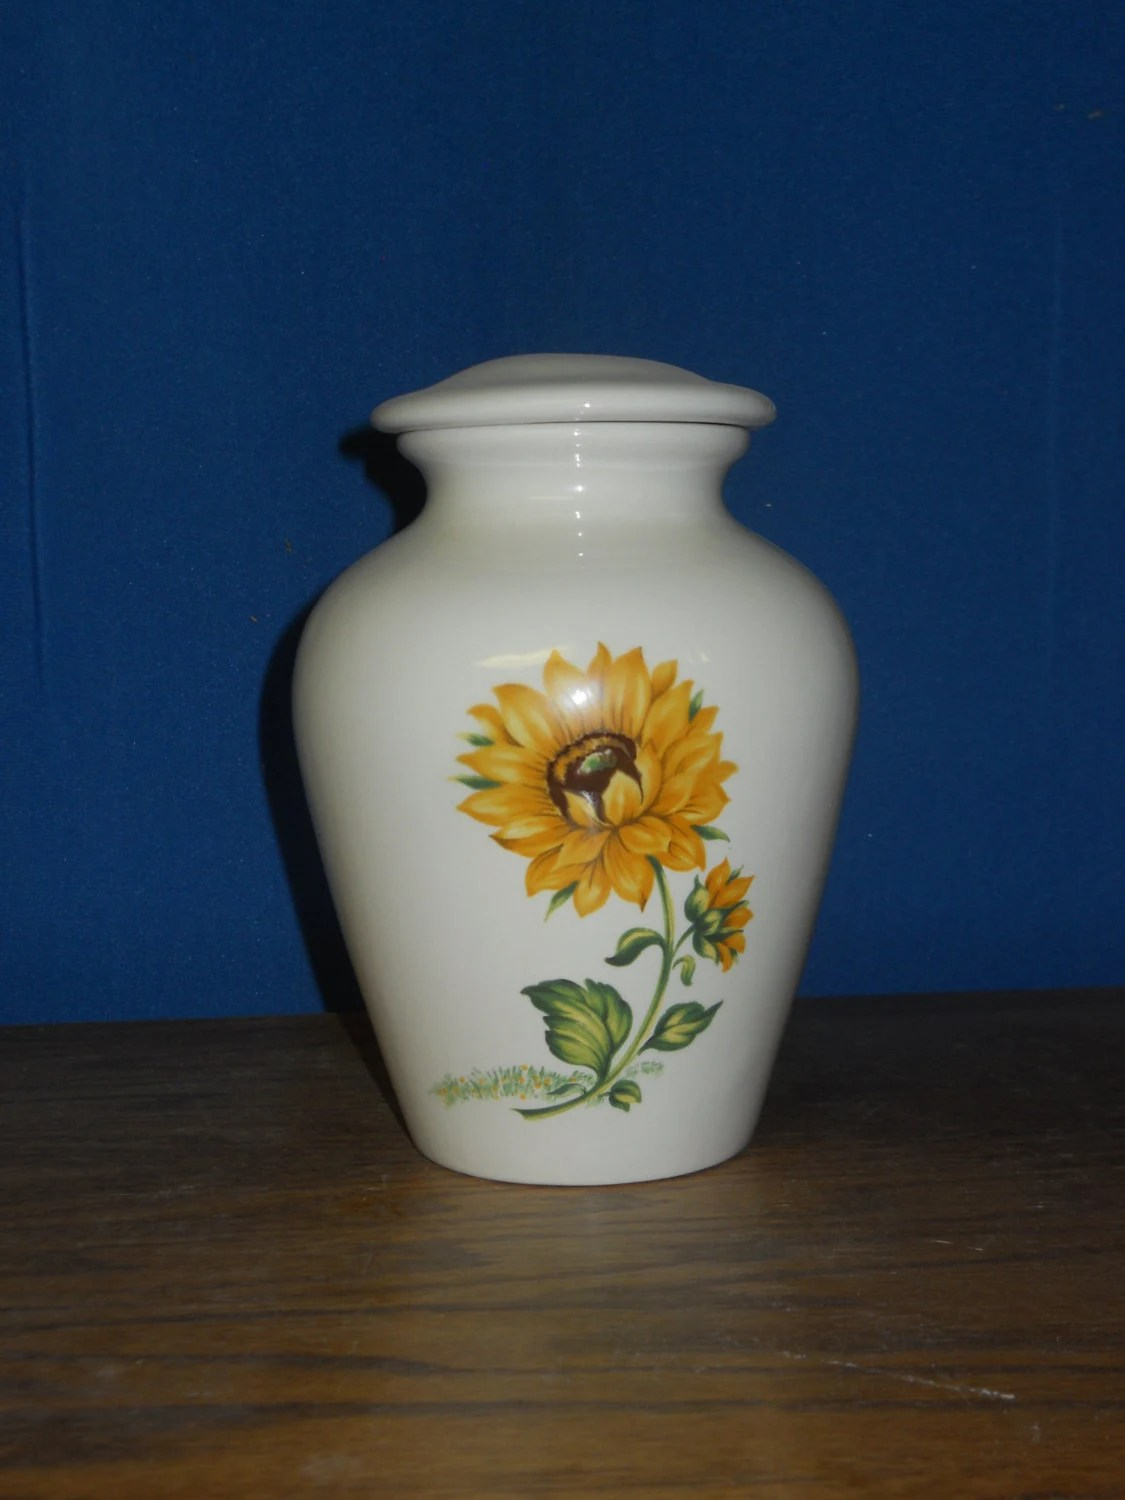 Small Ceramic Jars With Lids Small Ceramic Cremation Urn Yellow Sunflower Jar With Lid